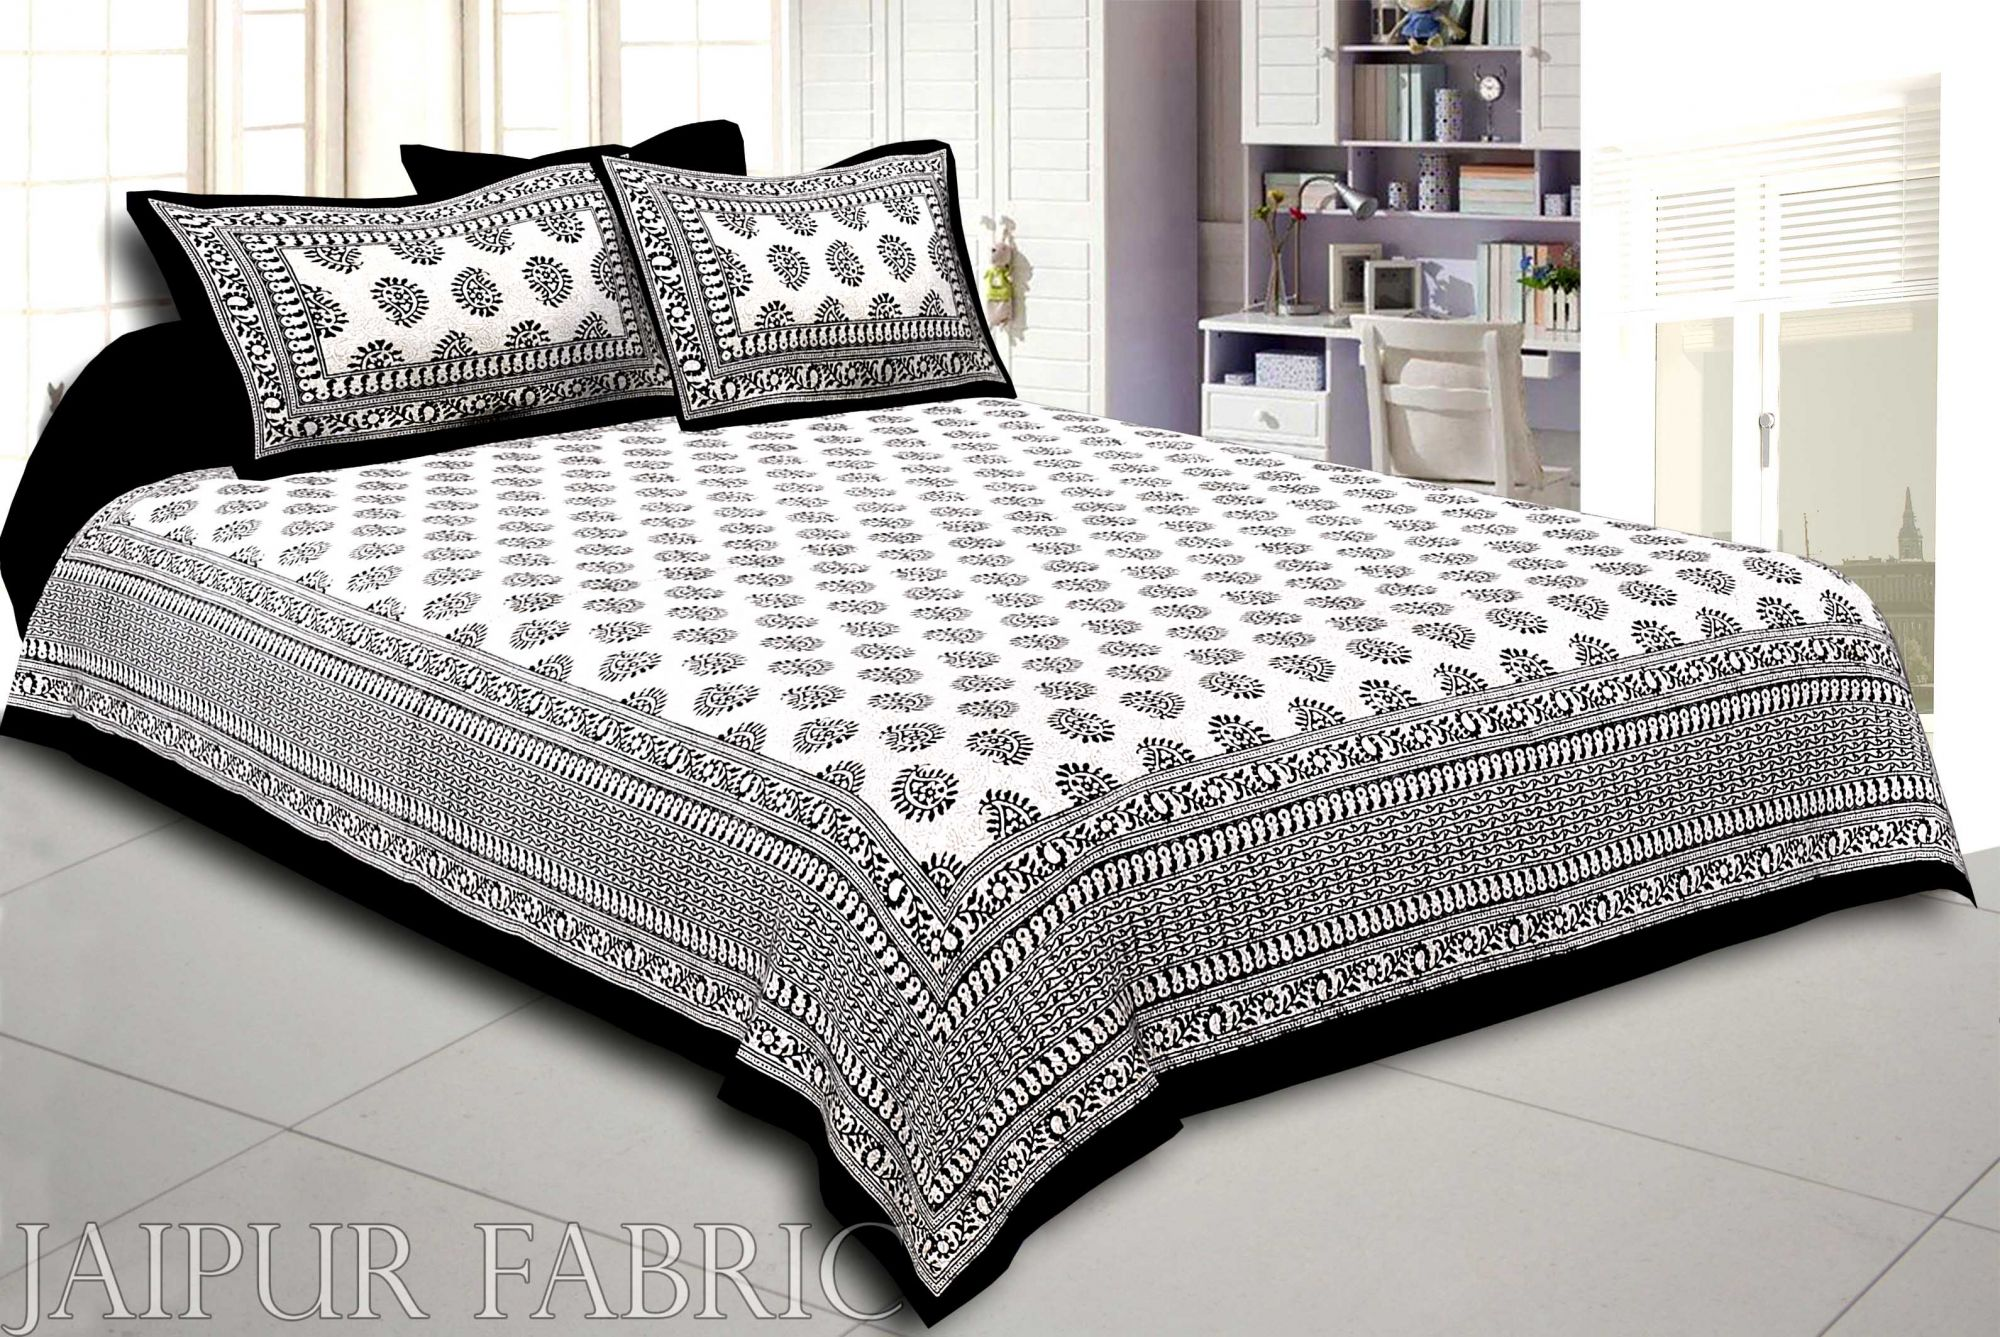 Black Border  Cream Base Kerry Pattern Hand Block Print Super Fine Cotton Bed Sheet